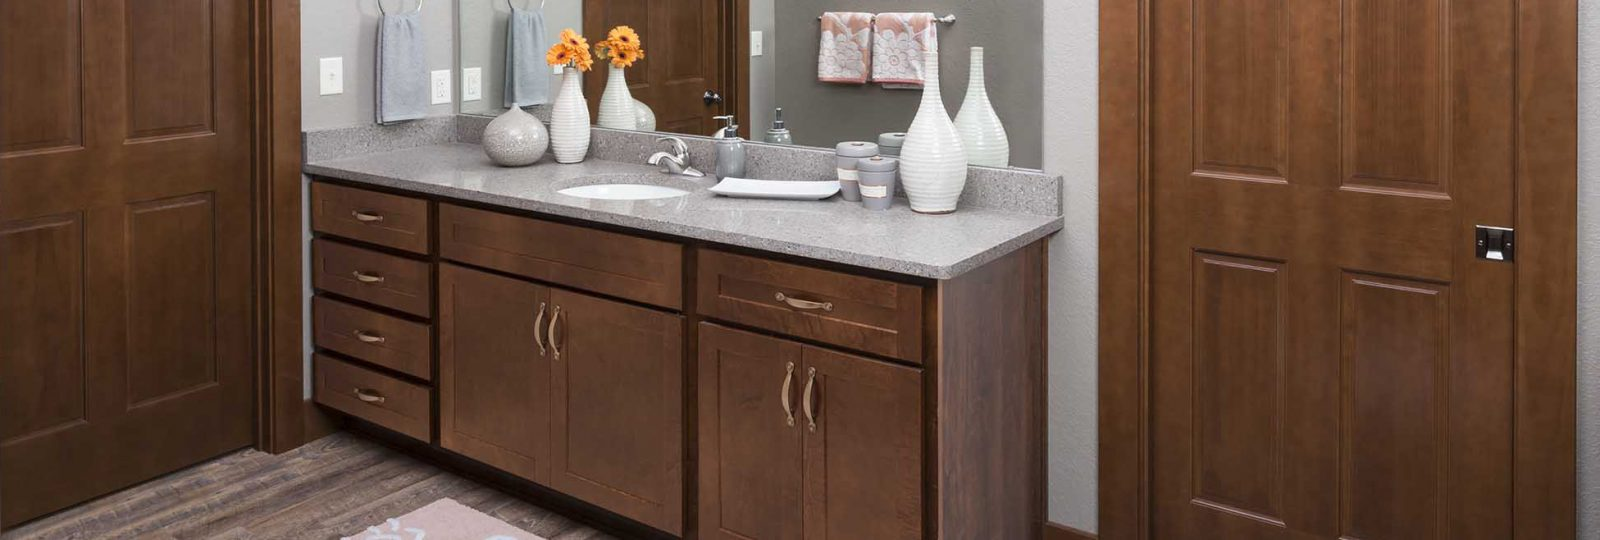 Fine Bathroom Vanities Cabinet Installation Co Heartland Home Interior And Landscaping Ponolsignezvosmurscom